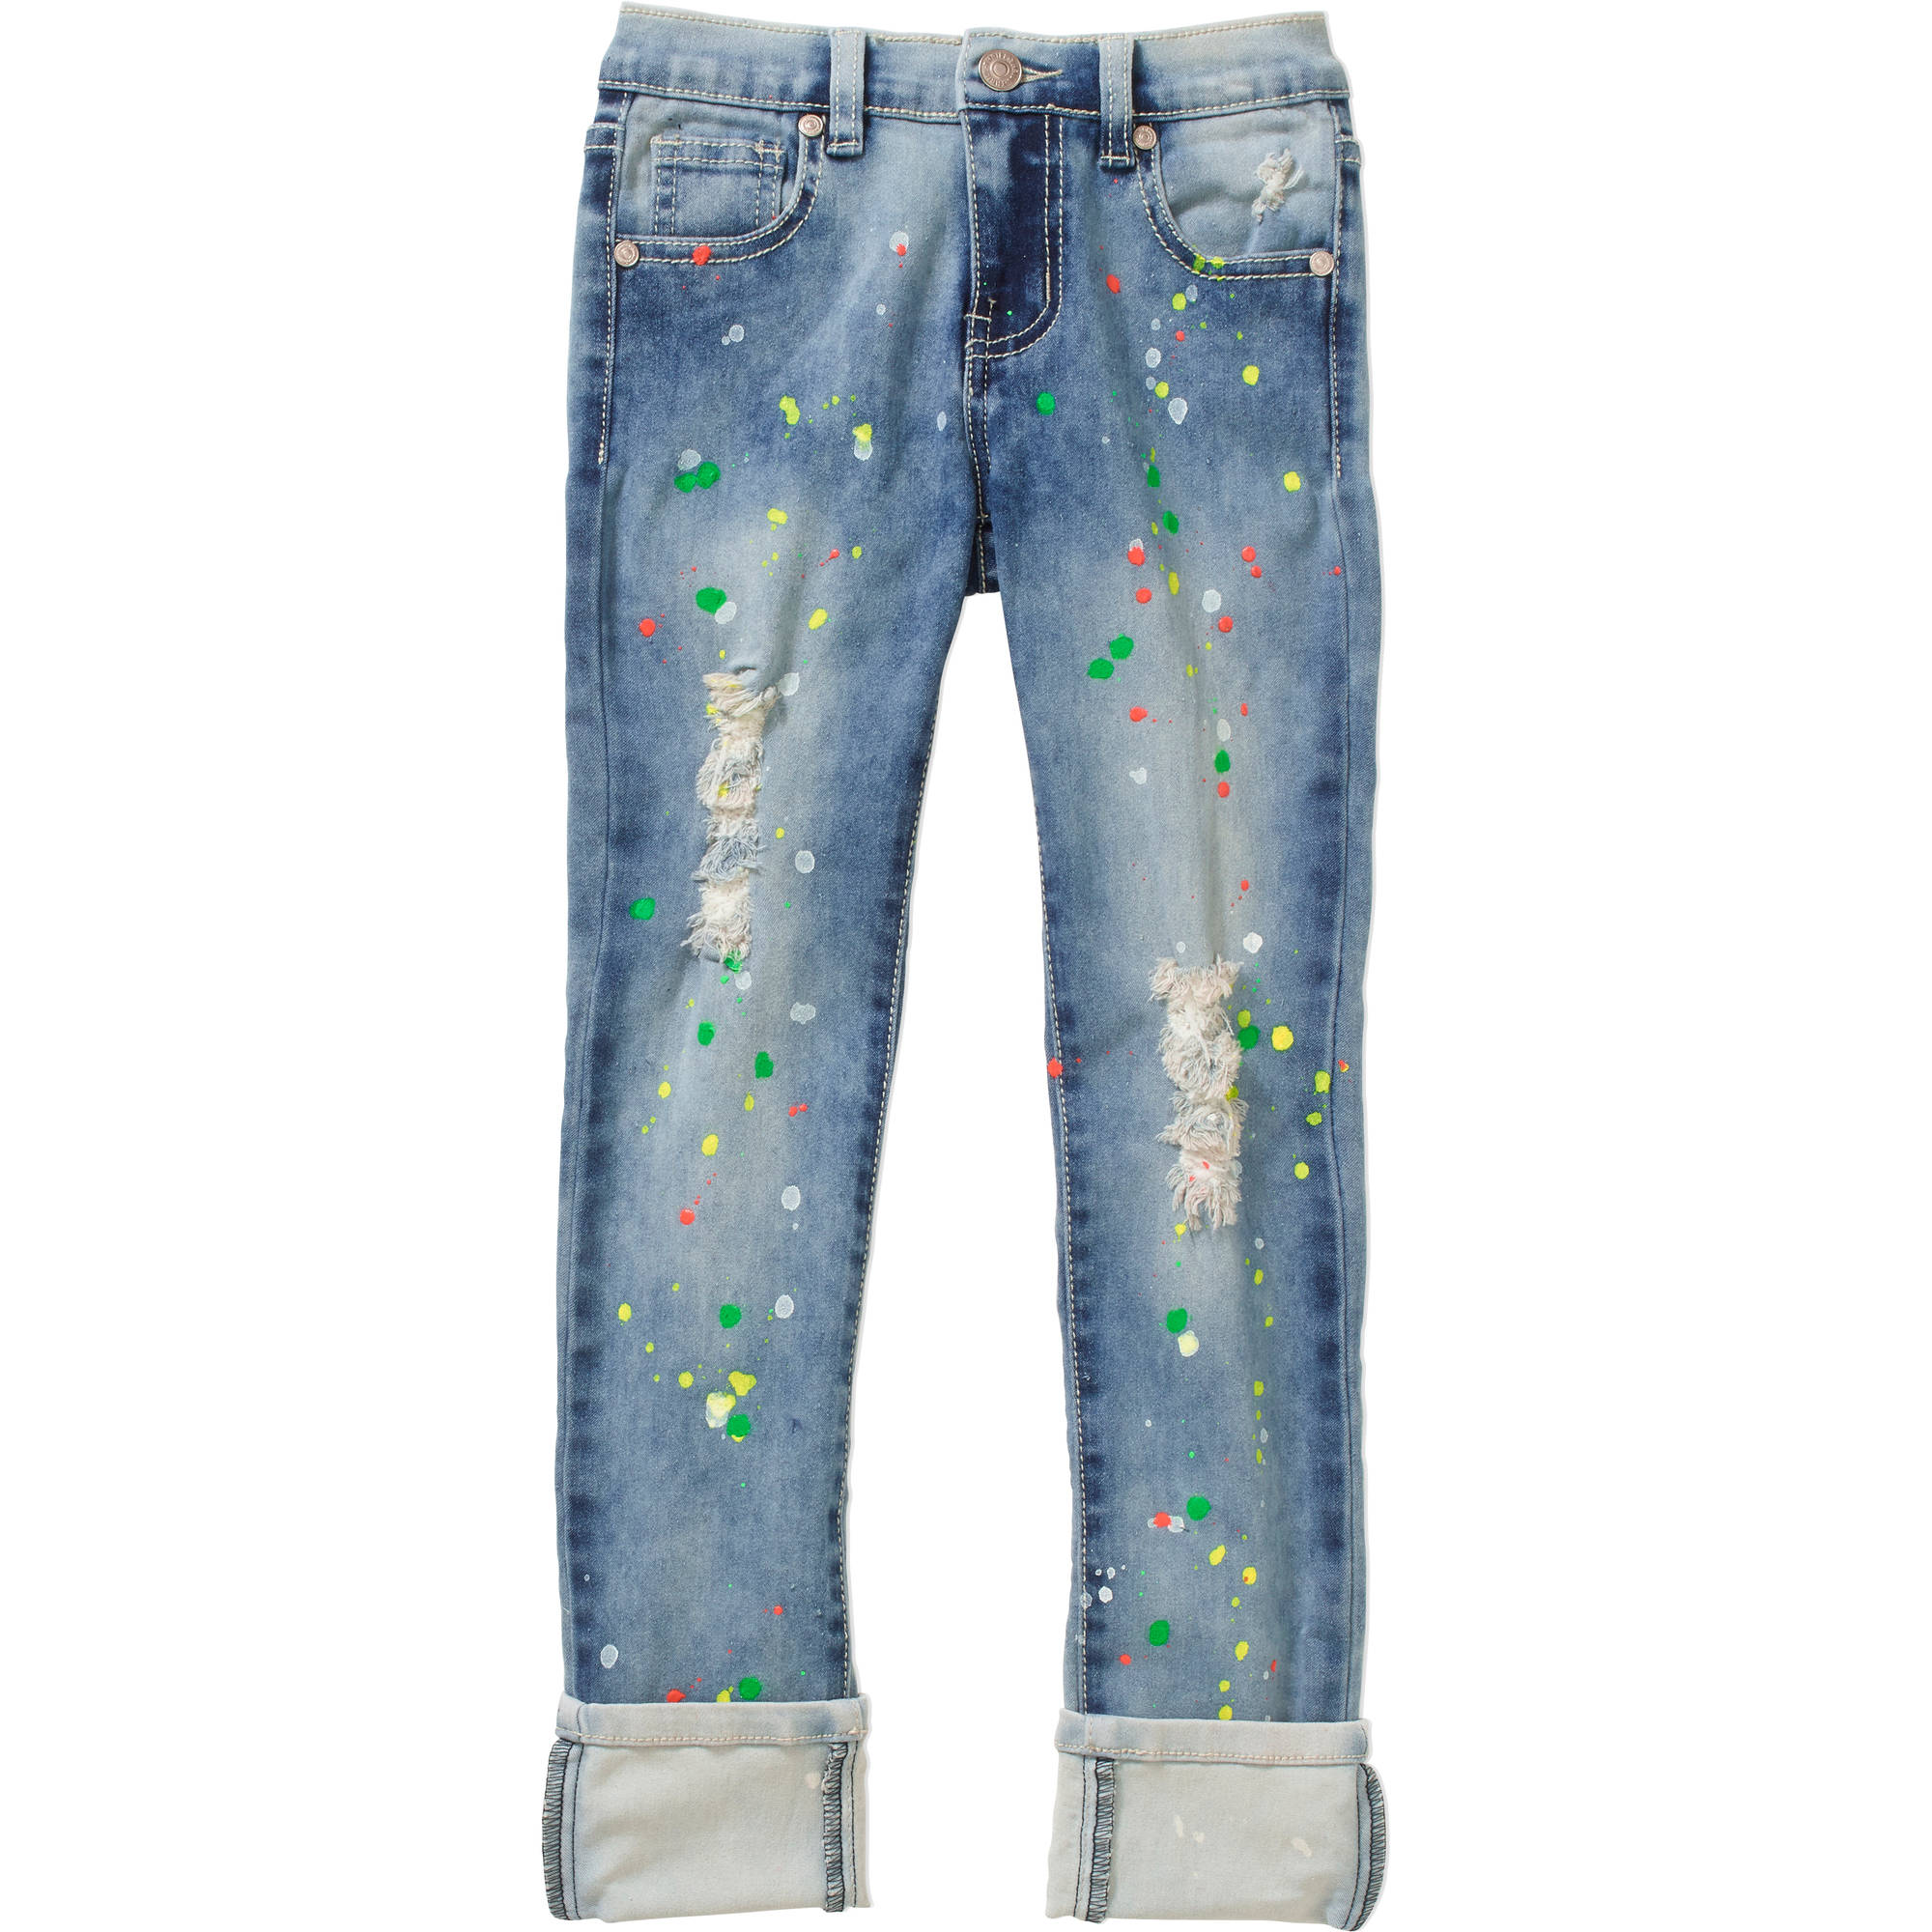 Thrill Jeans Girls' Rolled Cuff Distressed Paint Splatter Skinny Jeans